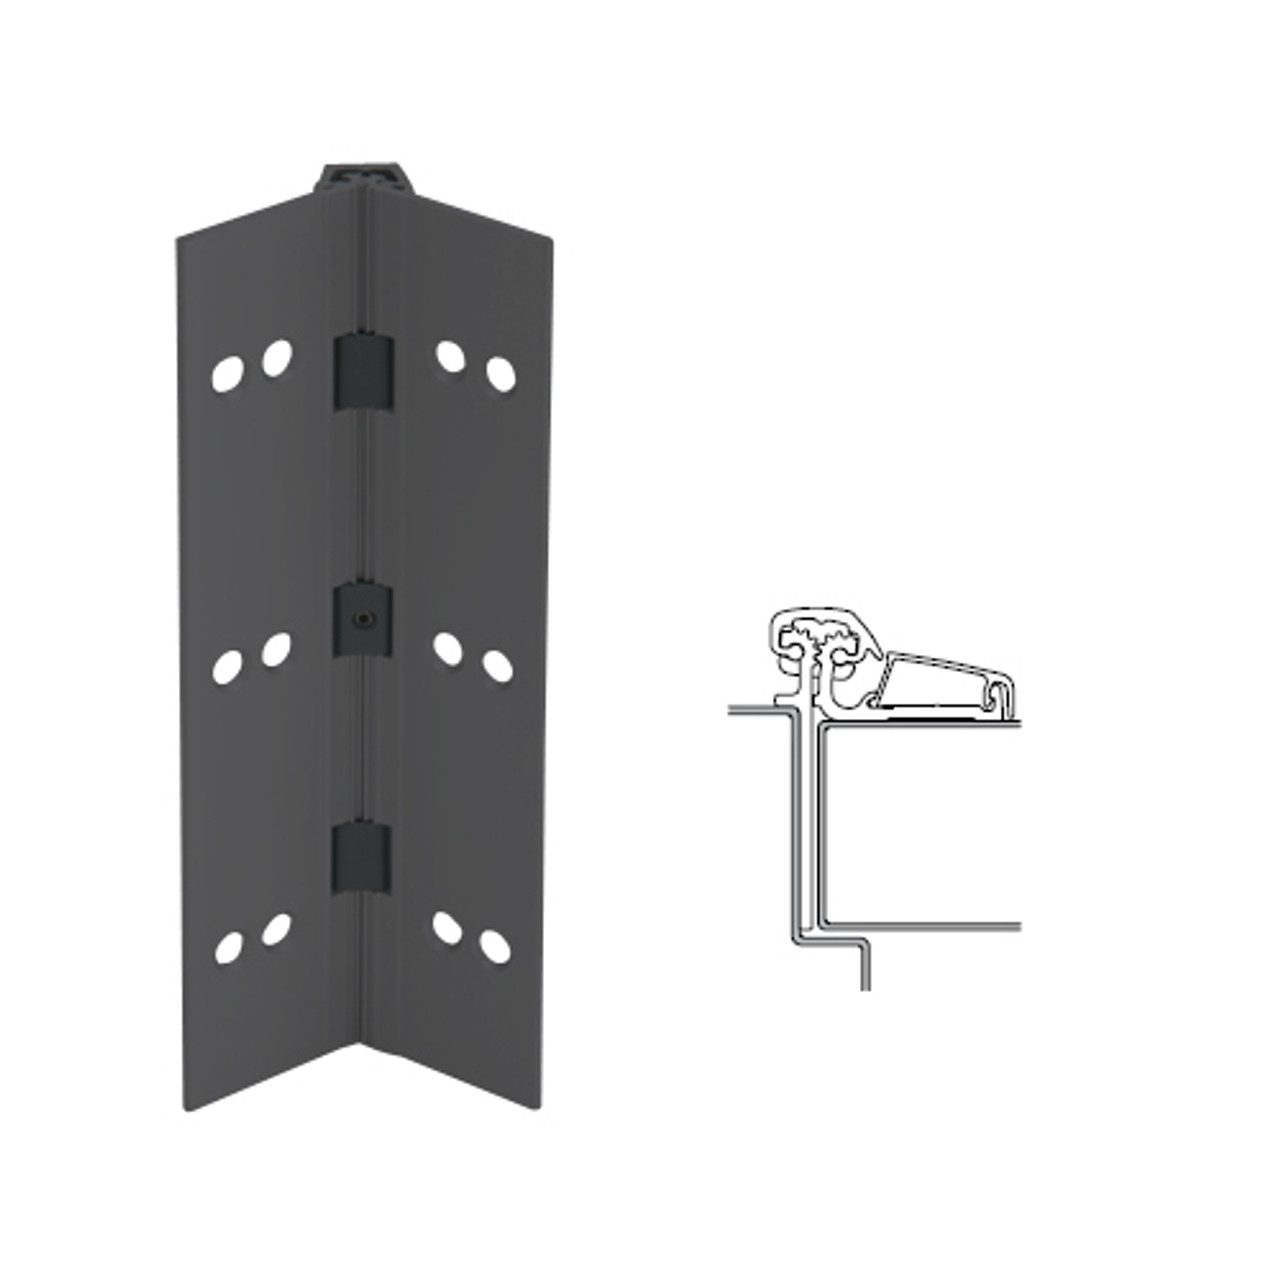 054XY-315AN-95-SECHM IVES Adjustable Half Surface Continuous Geared Hinges with Security Screws - Hex Pin Drive in Anodized Black